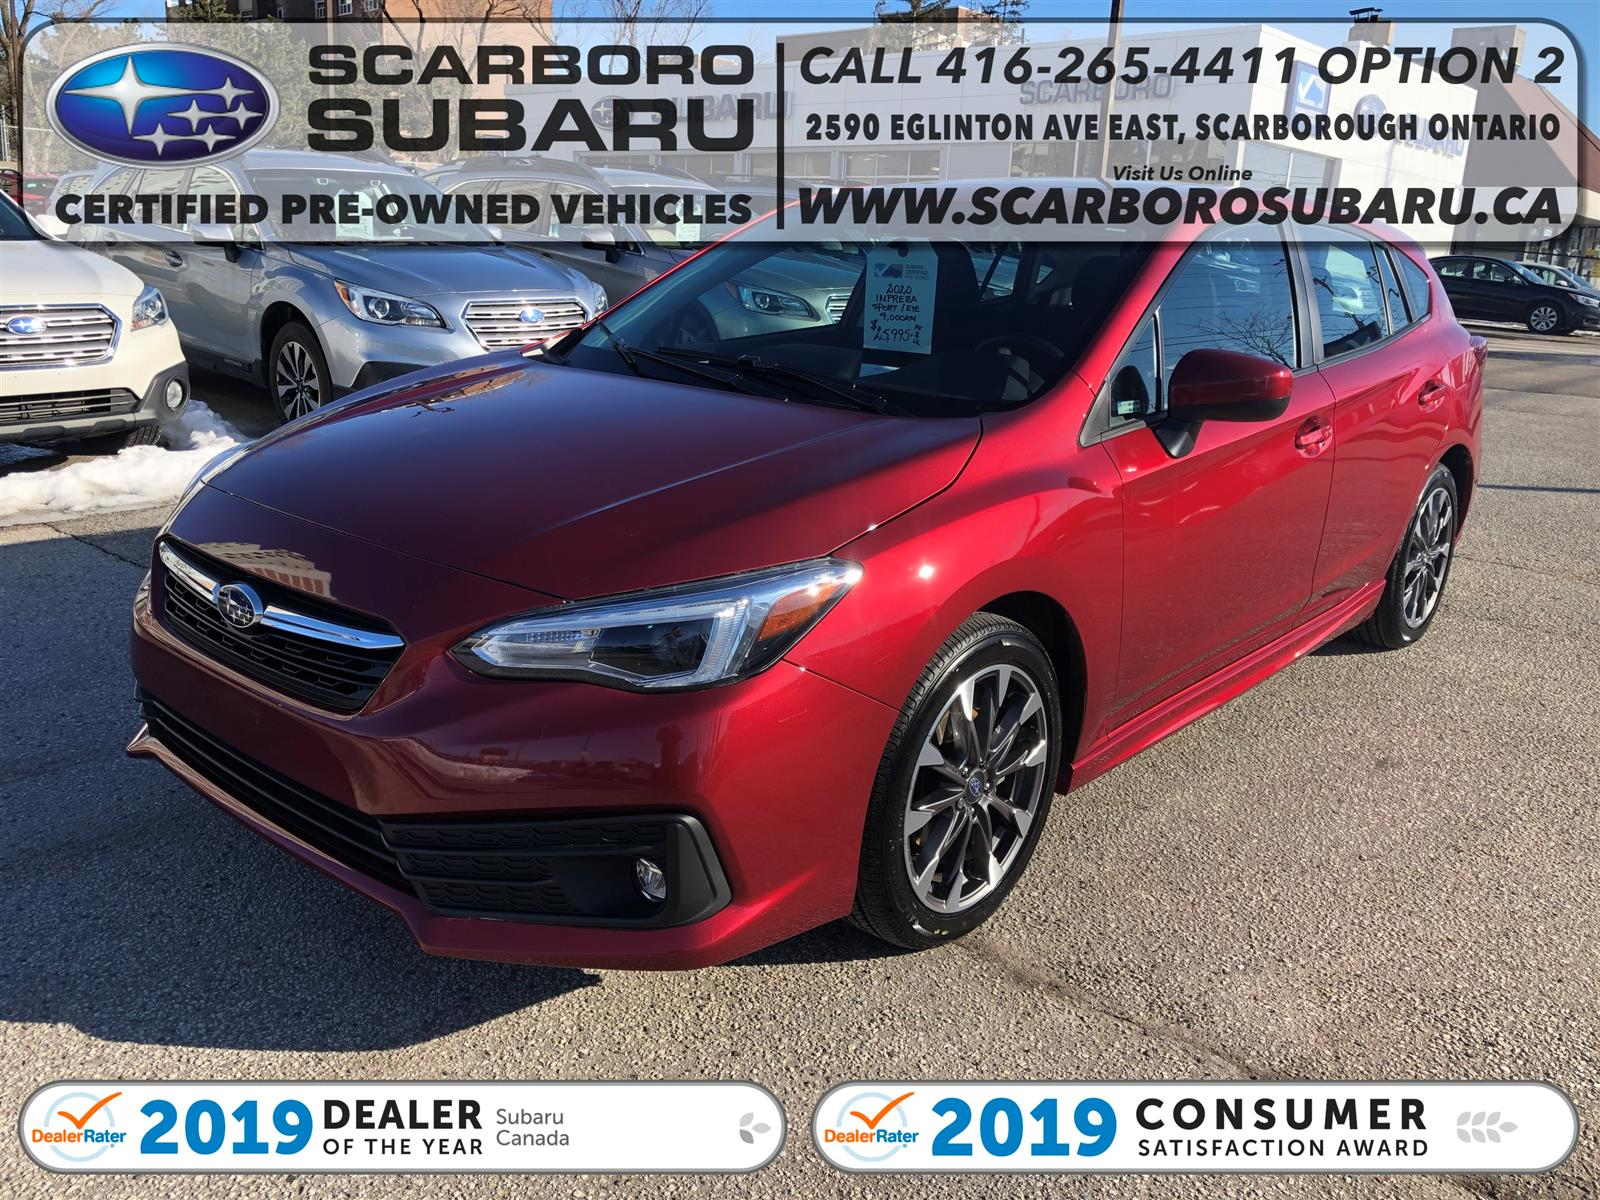 used 2020 Subaru Impreza car, priced at $25,995